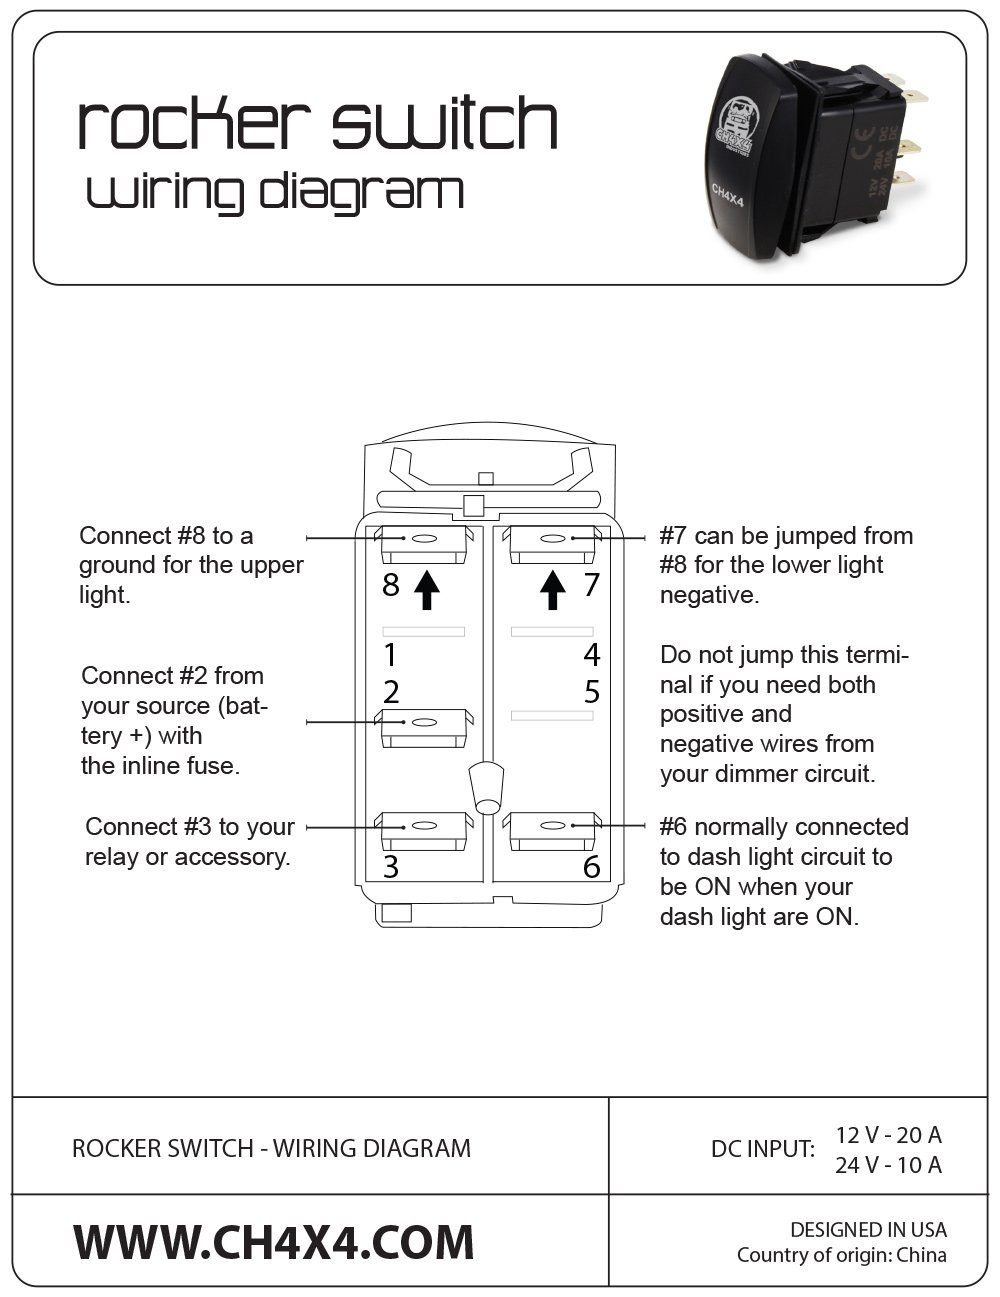 Ch4x4 Rocker Switch V2 Rear Strobe Lights Symbol Industries Wiring Diagram